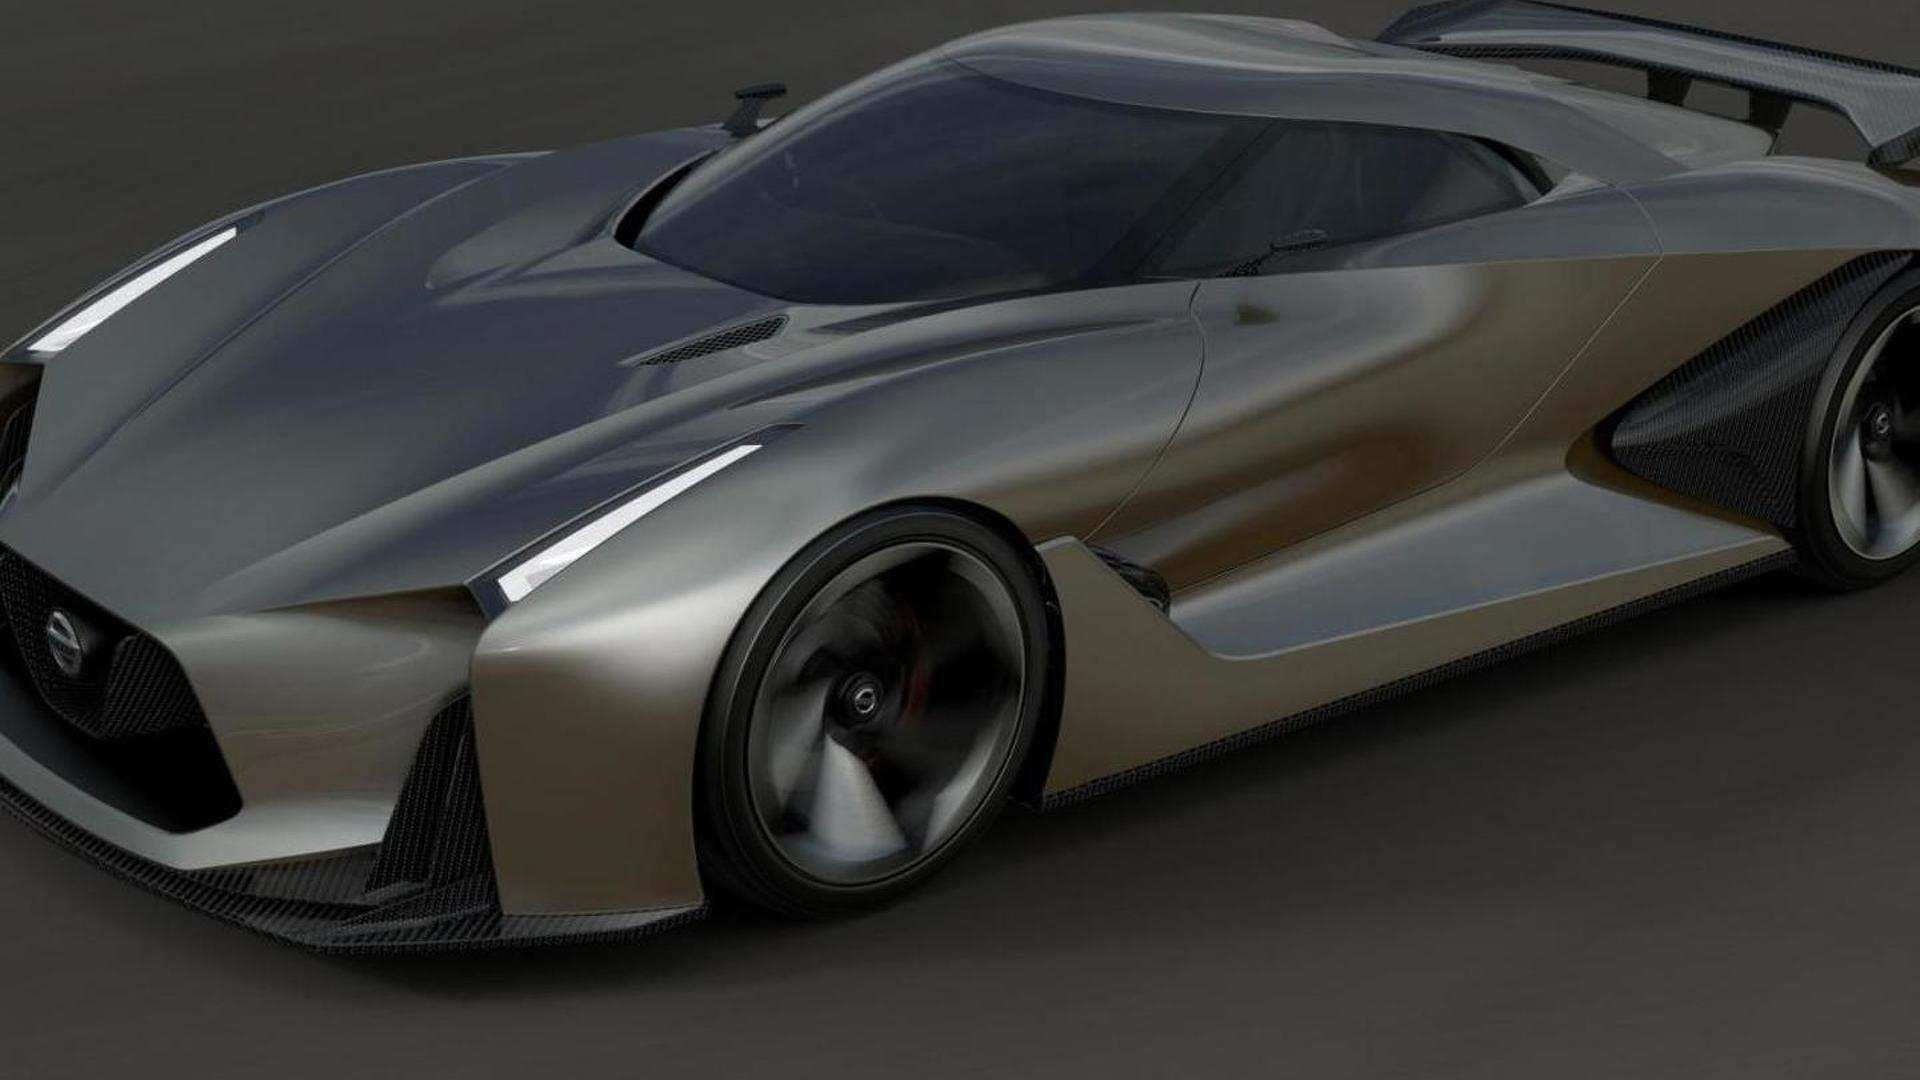 19 All New Nissan Concept 2020 Gran Turismo Release Date And Concept